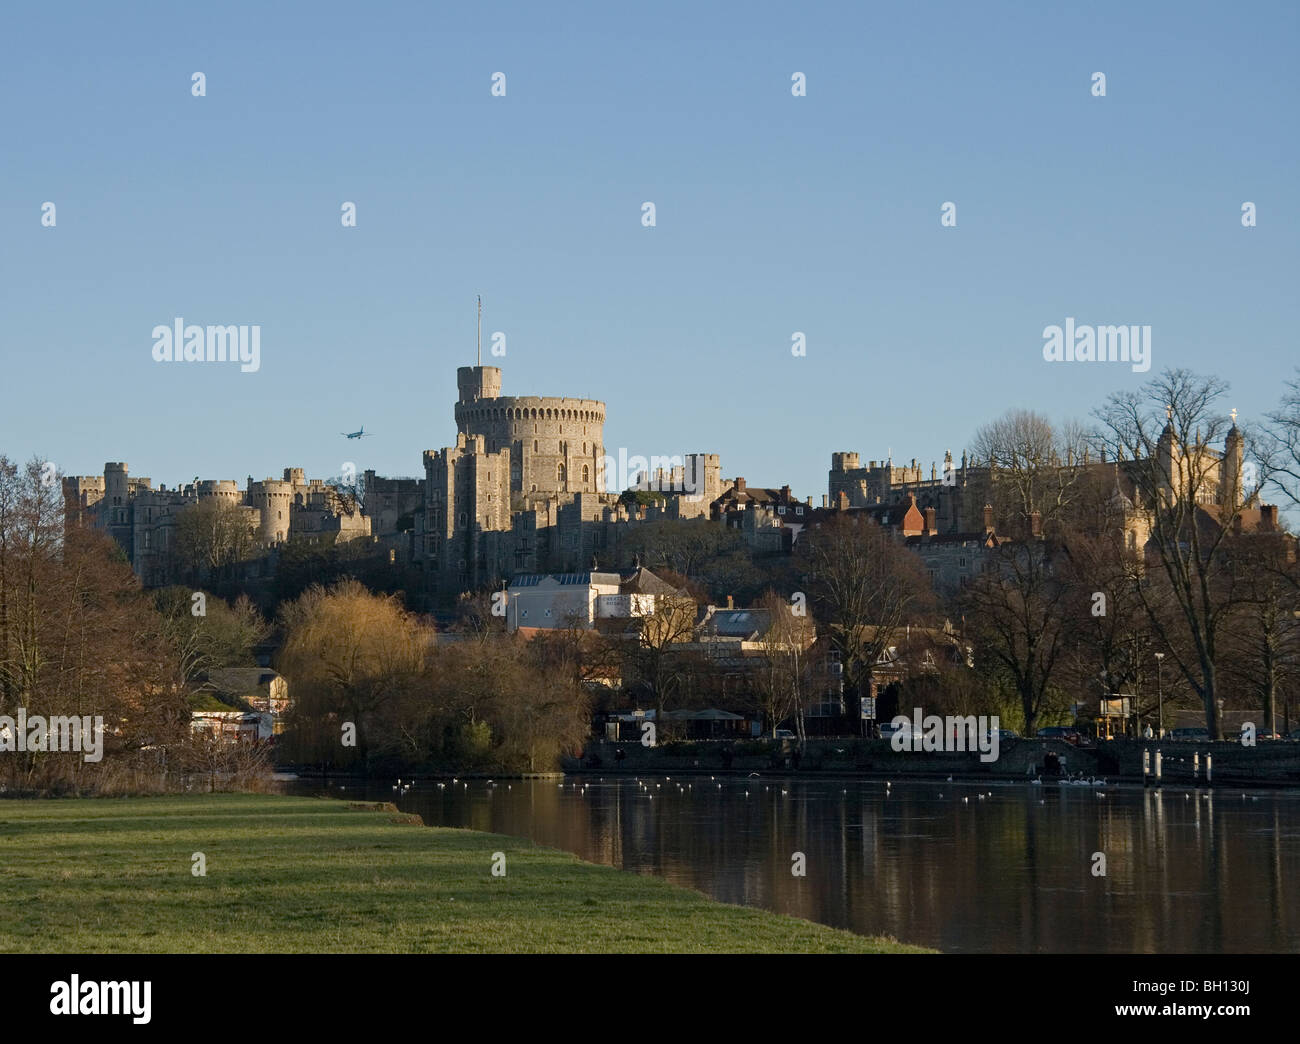 Windsor Castle with aircraft passing over on flight path to Heathrow airport - Stock Image